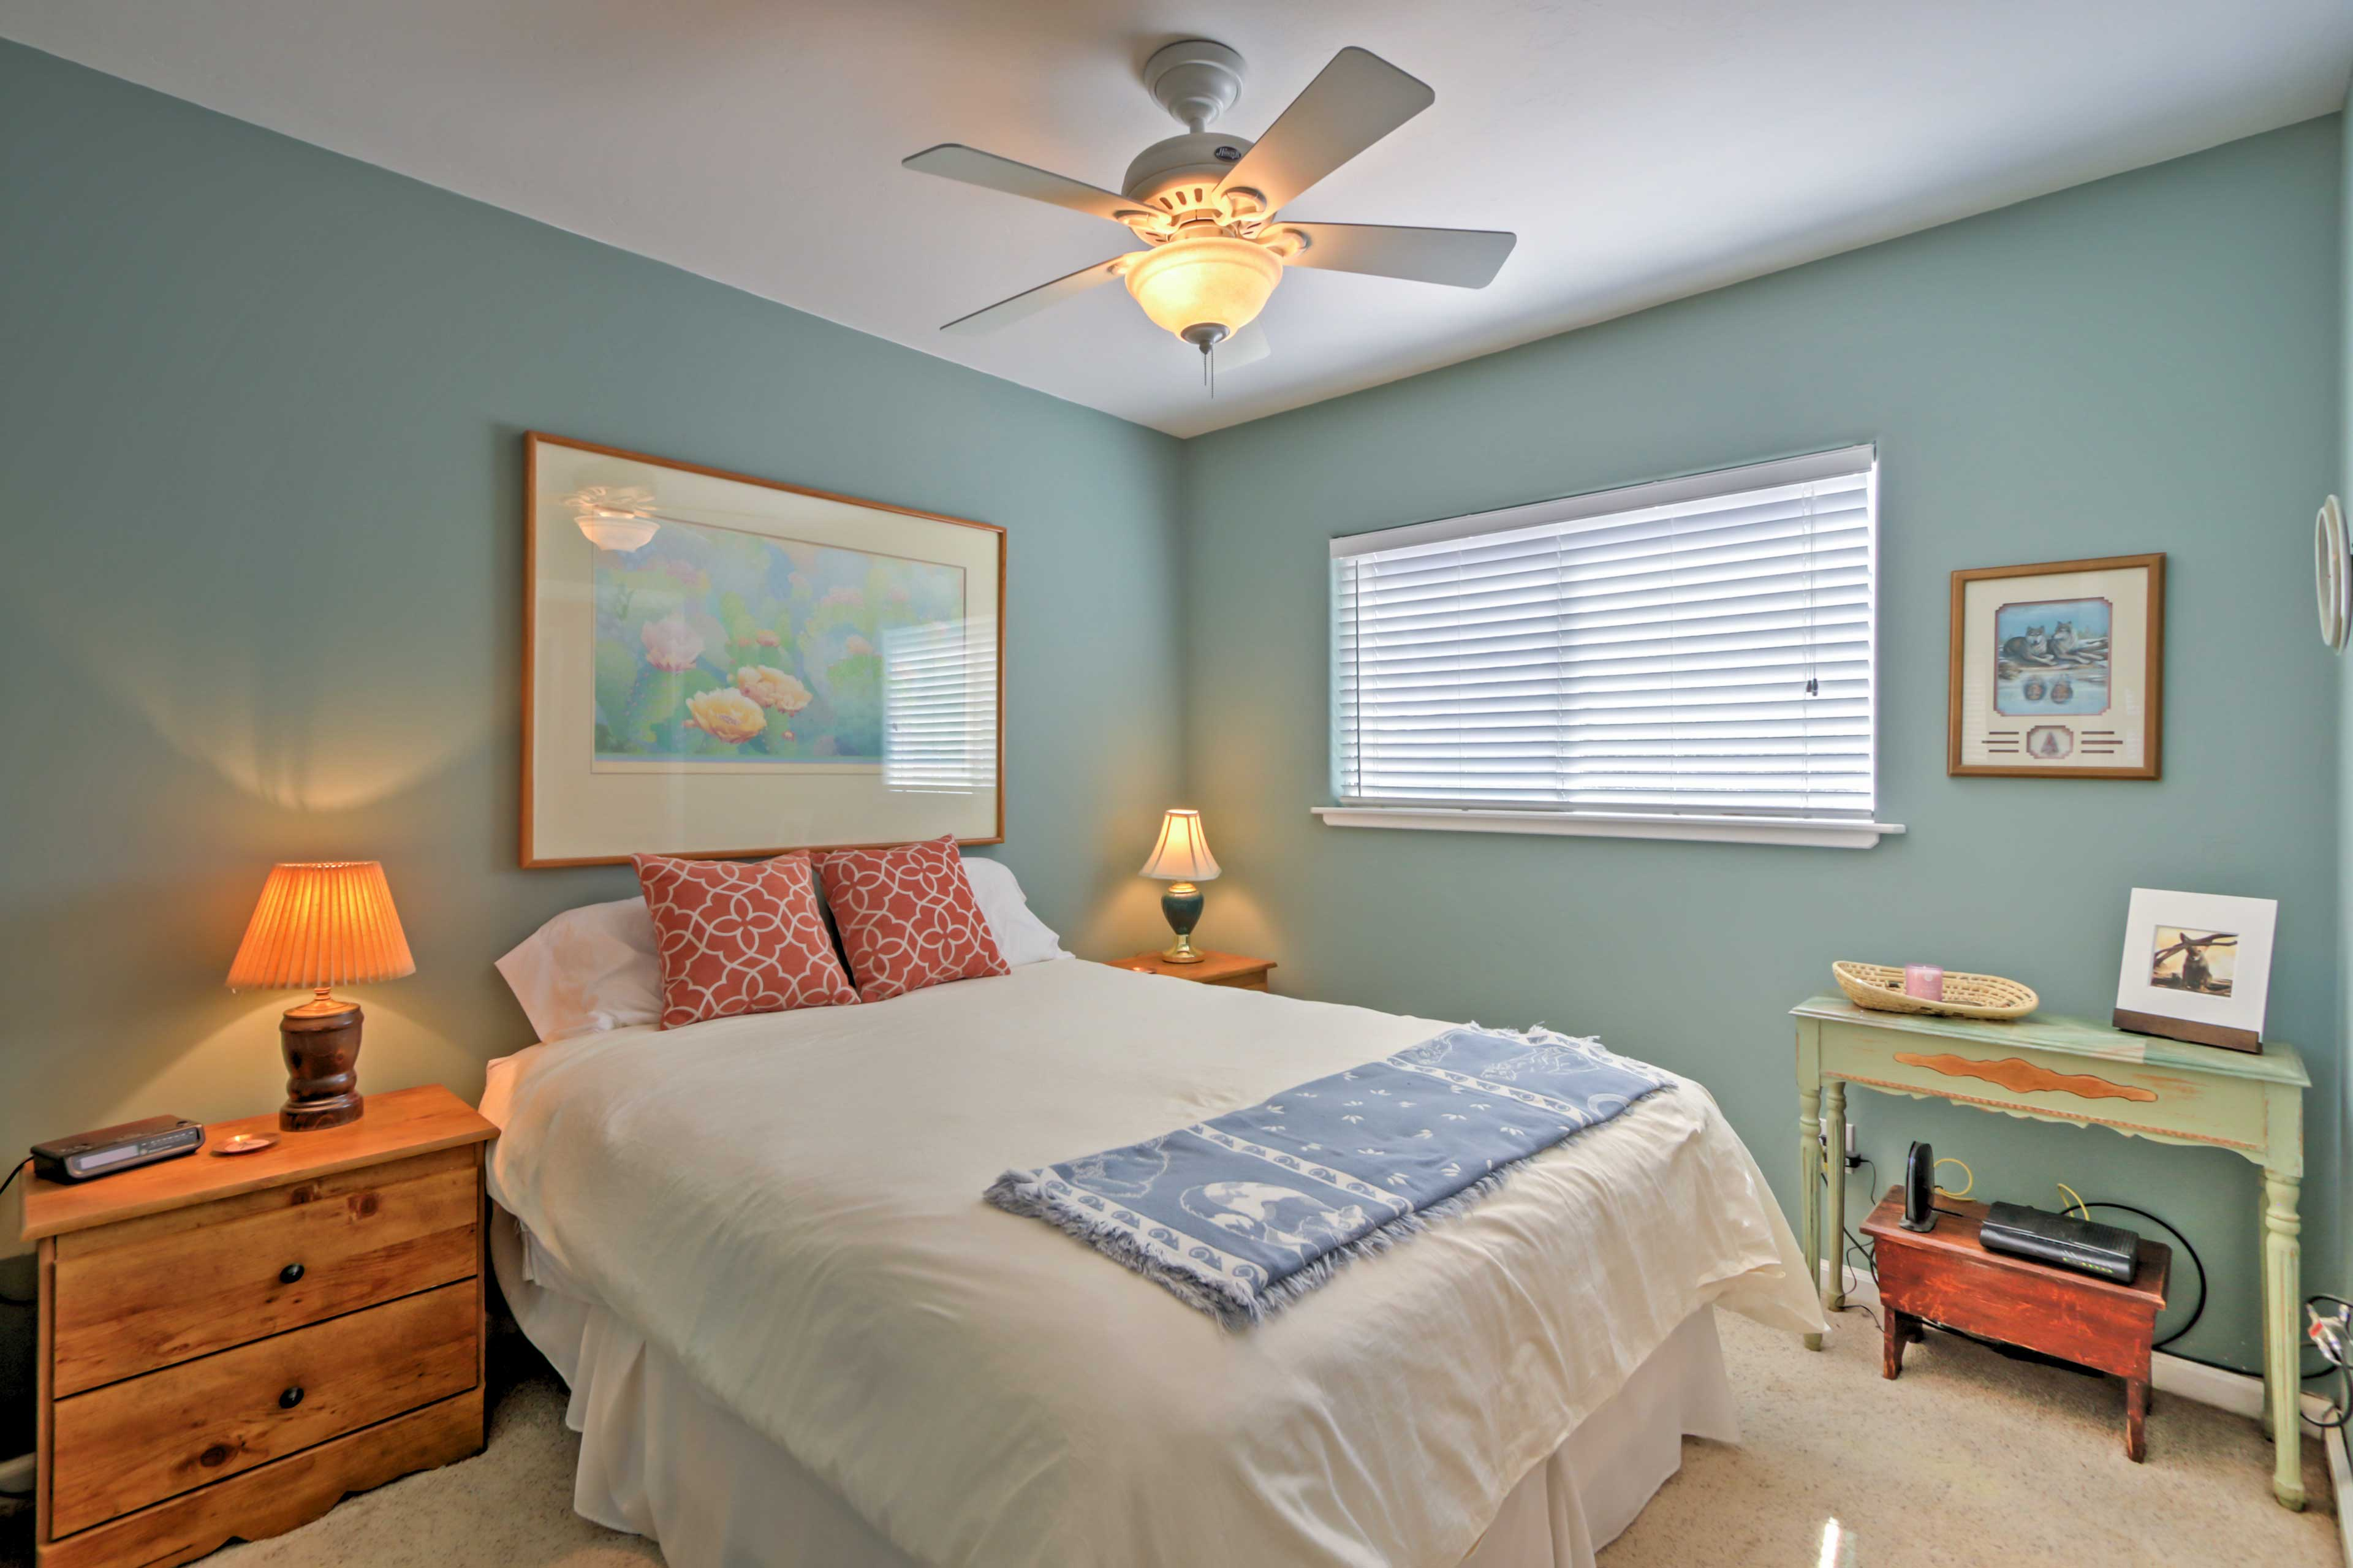 Rest easy in this cozy bedroom that features a plush queen bed.